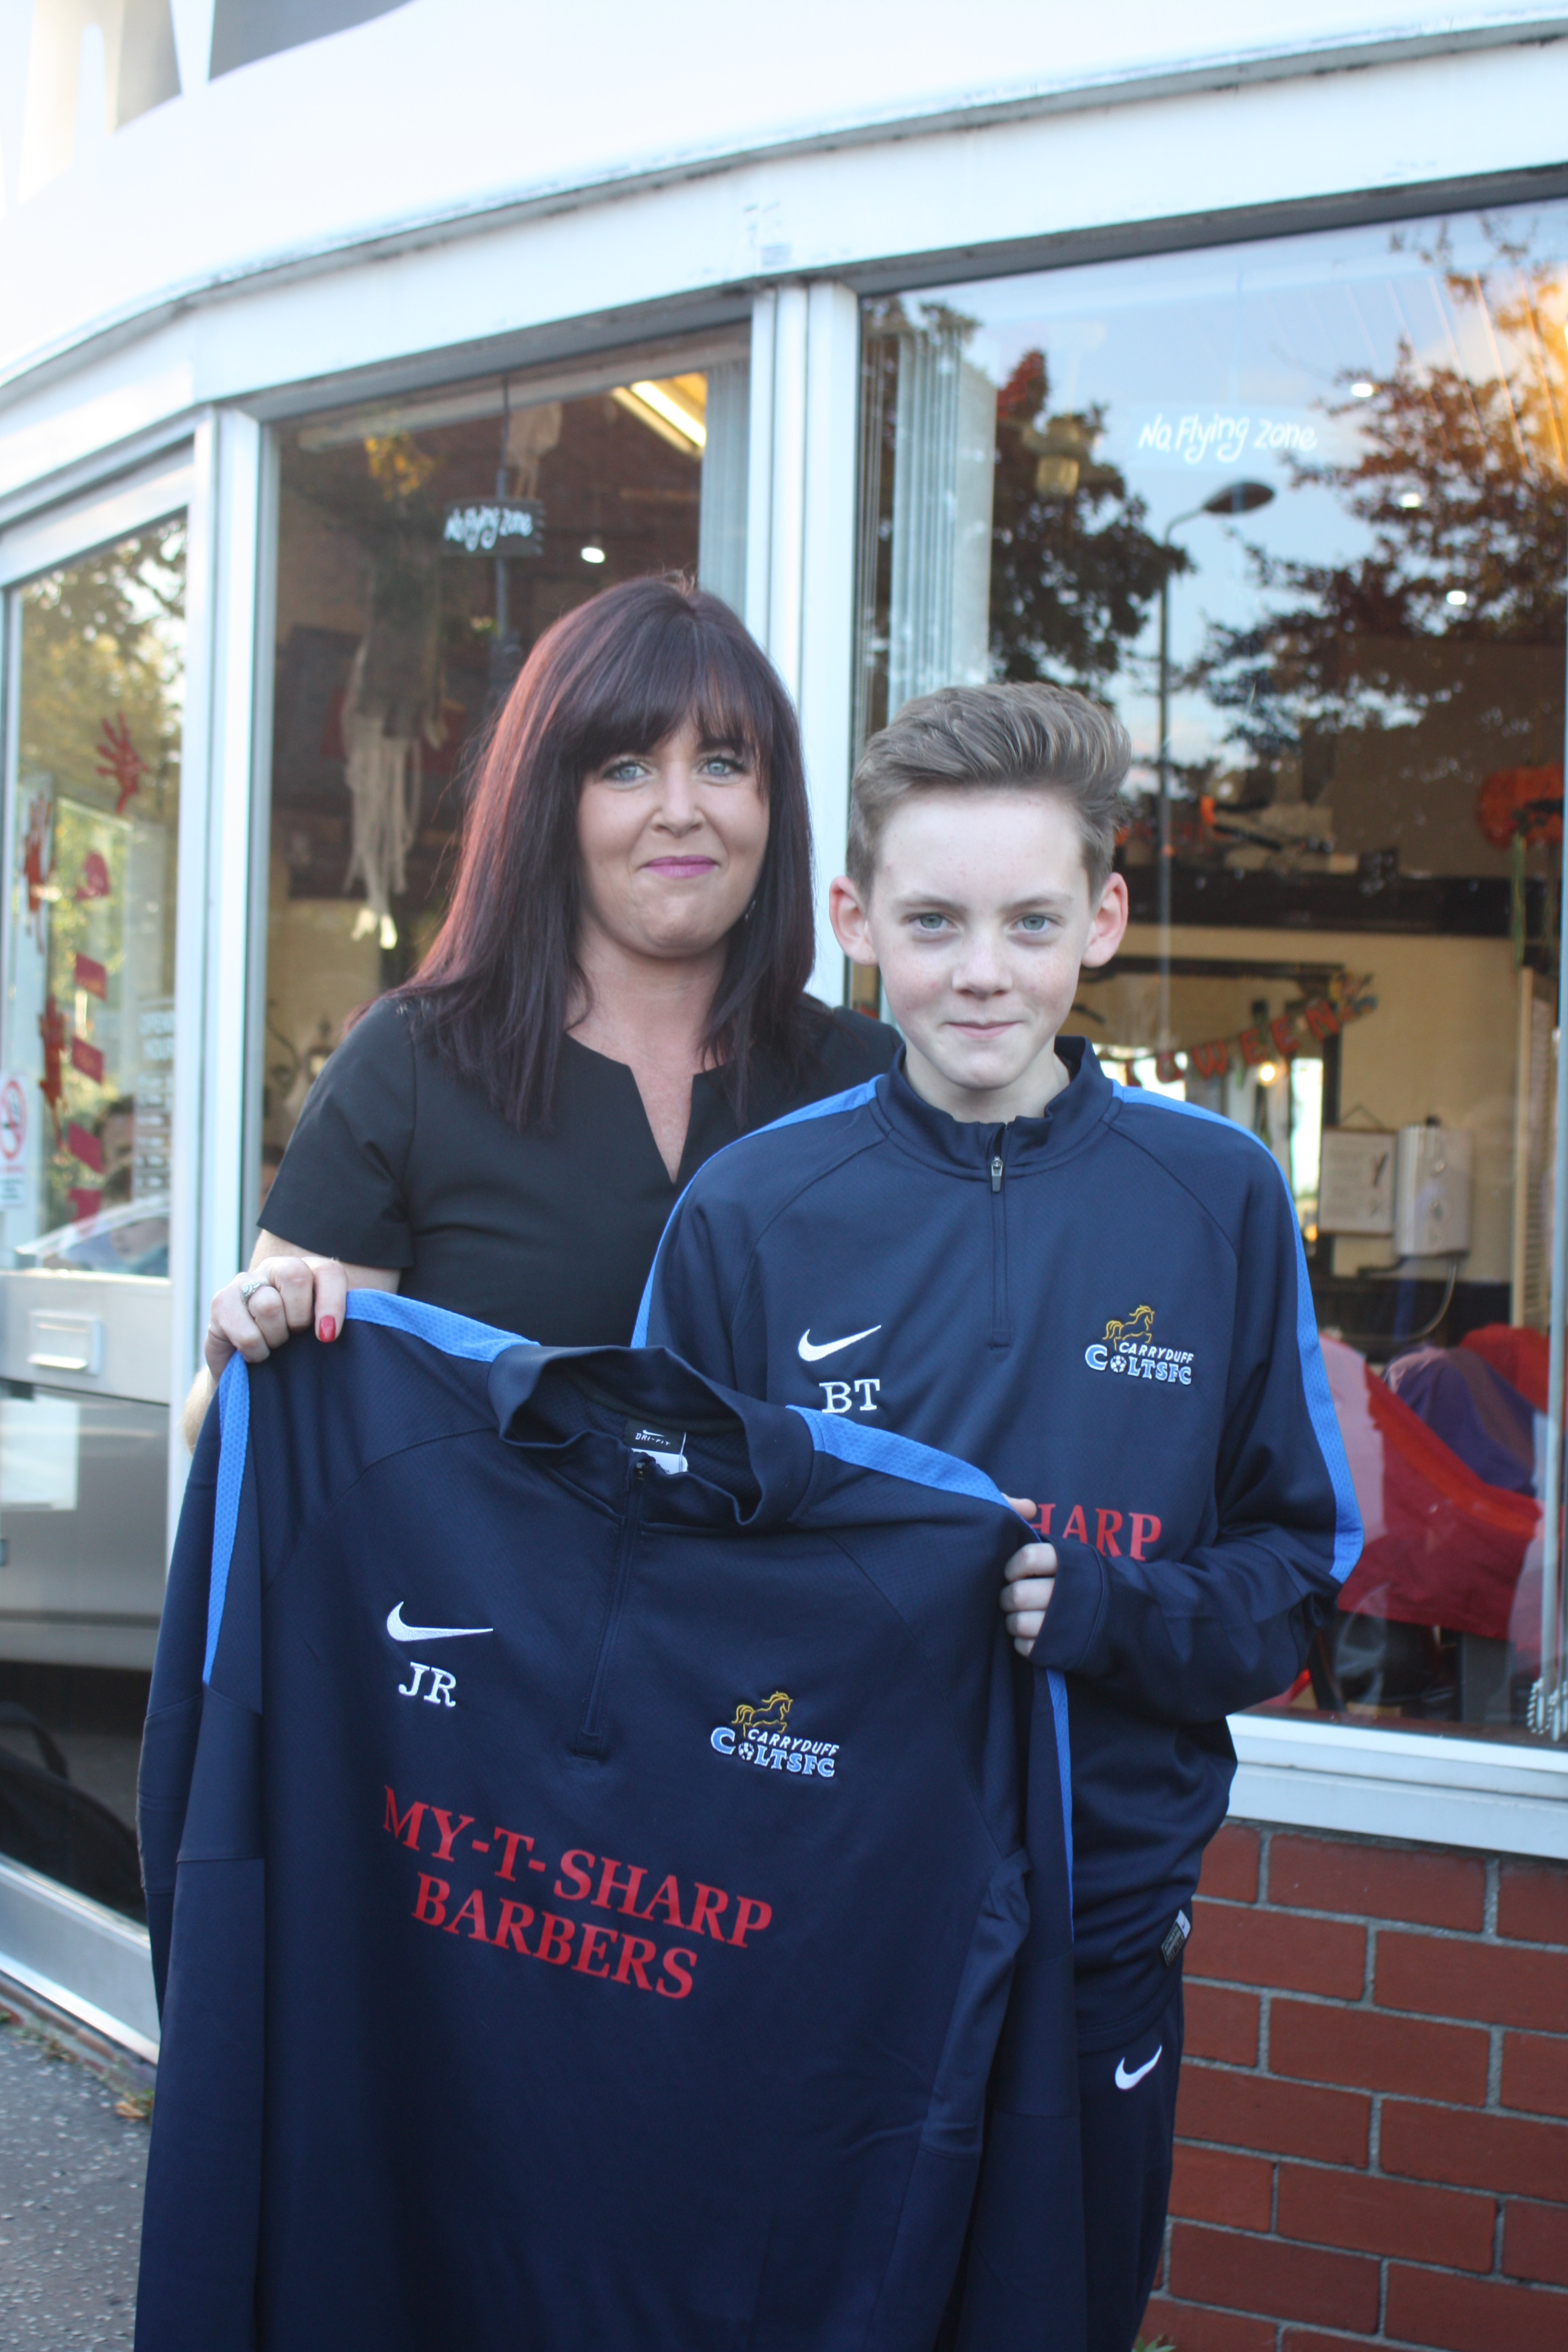 carryduff colts u sponsors carryduff colts keith mcmanus and brian maguire of mcguire farry accountants in carryduff hand over a new set of jerseys to the carryduff colts u15 squad